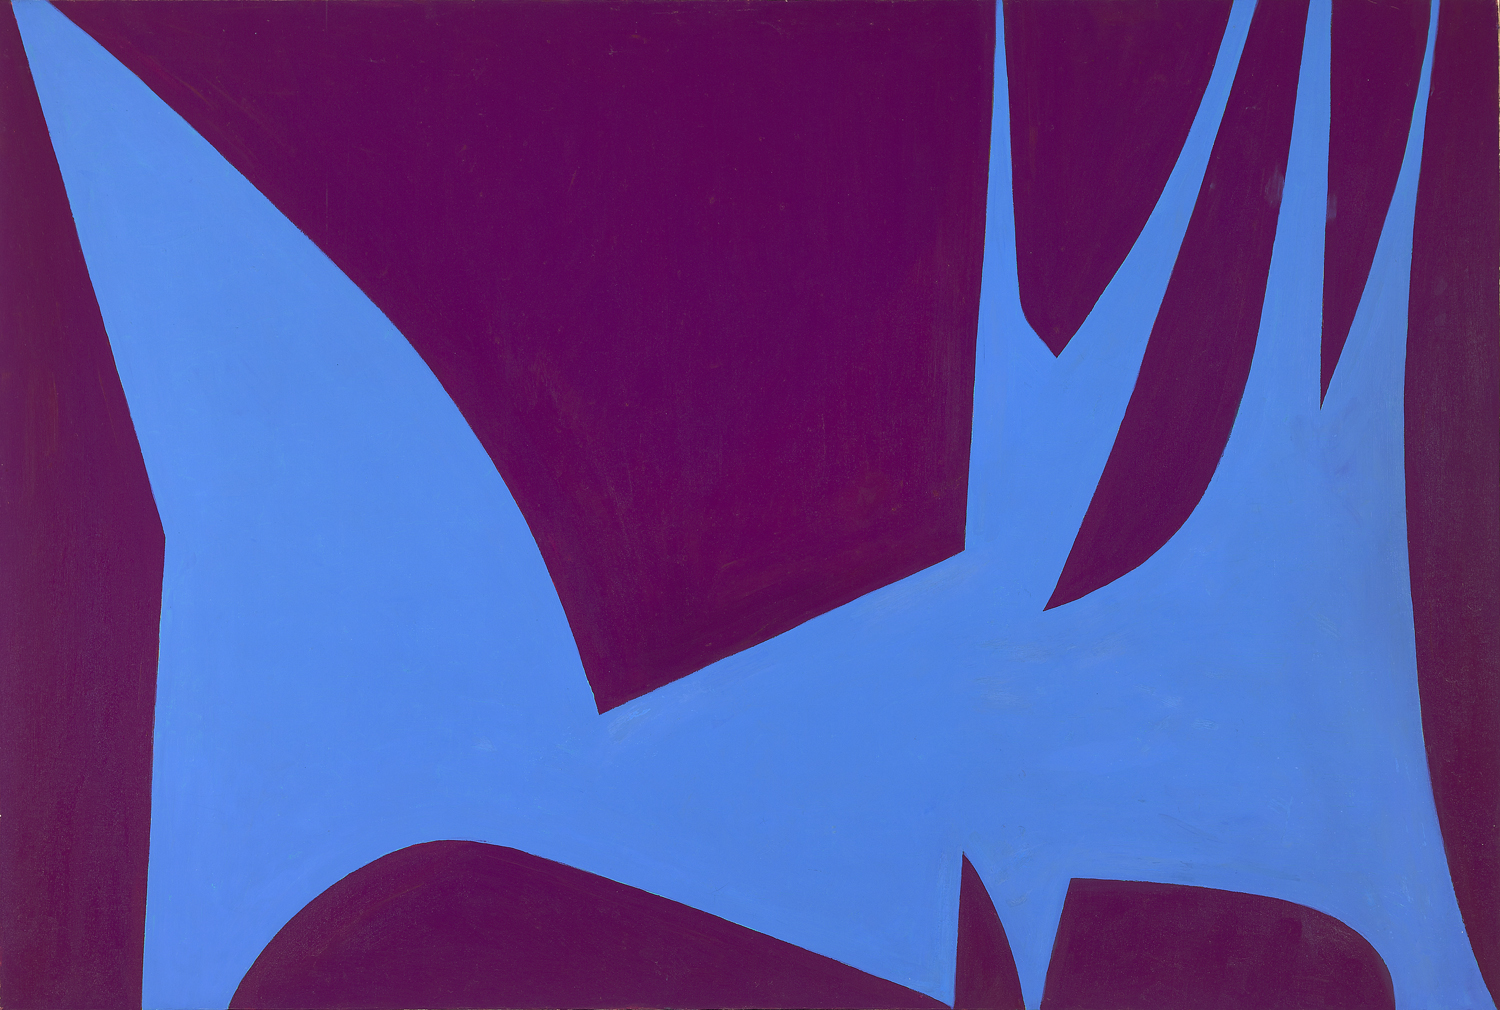 Lorser Feitelson (1898 - 1978)   Magical Space Forms , 1951 oil on canvas 50 x 74 inches; 127 x 188 centimeters